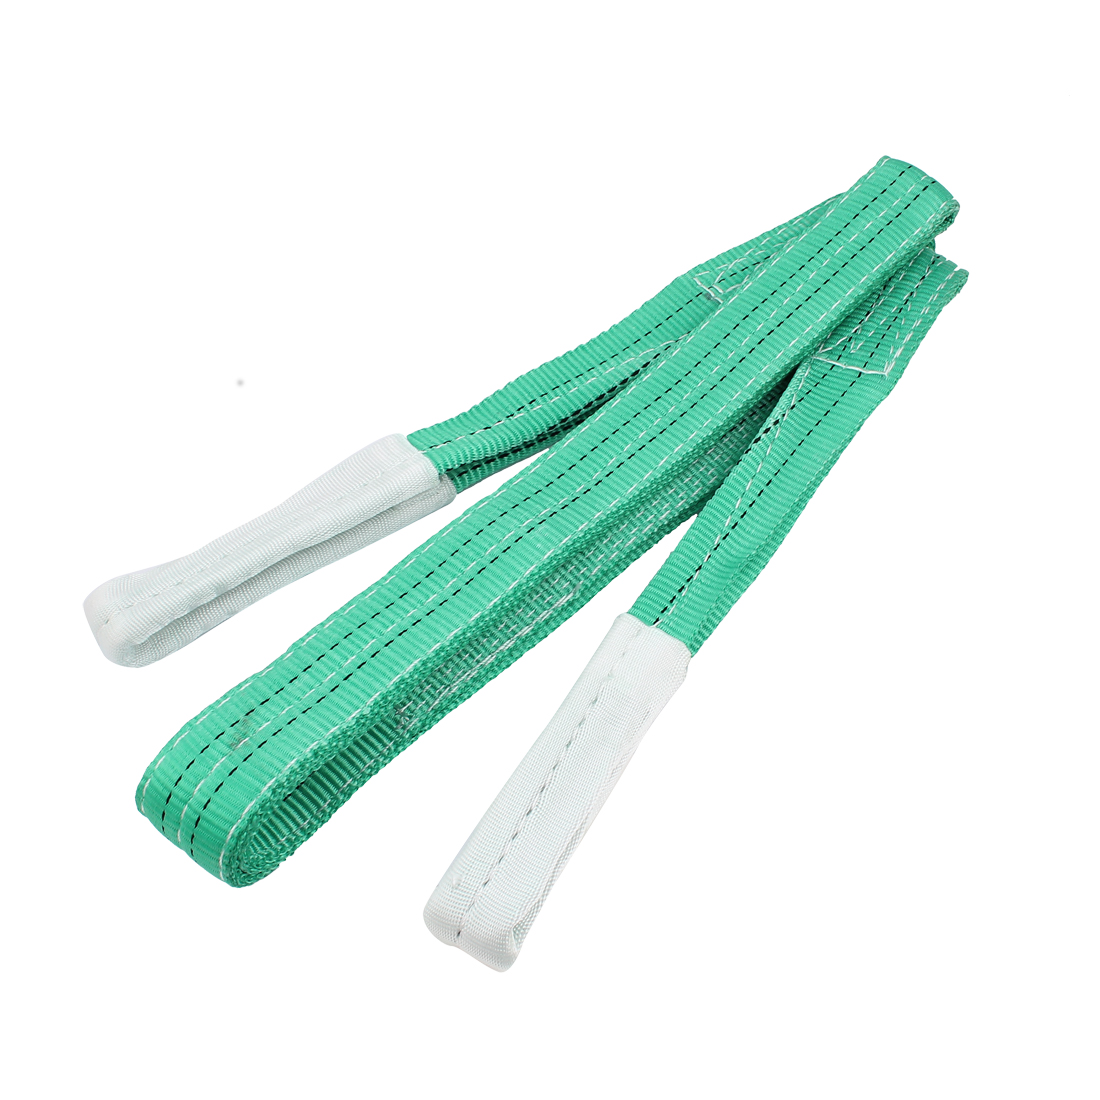 3 Meter 50mm Width Eye to Eye Nylon Web Lifting Tow Strap Green